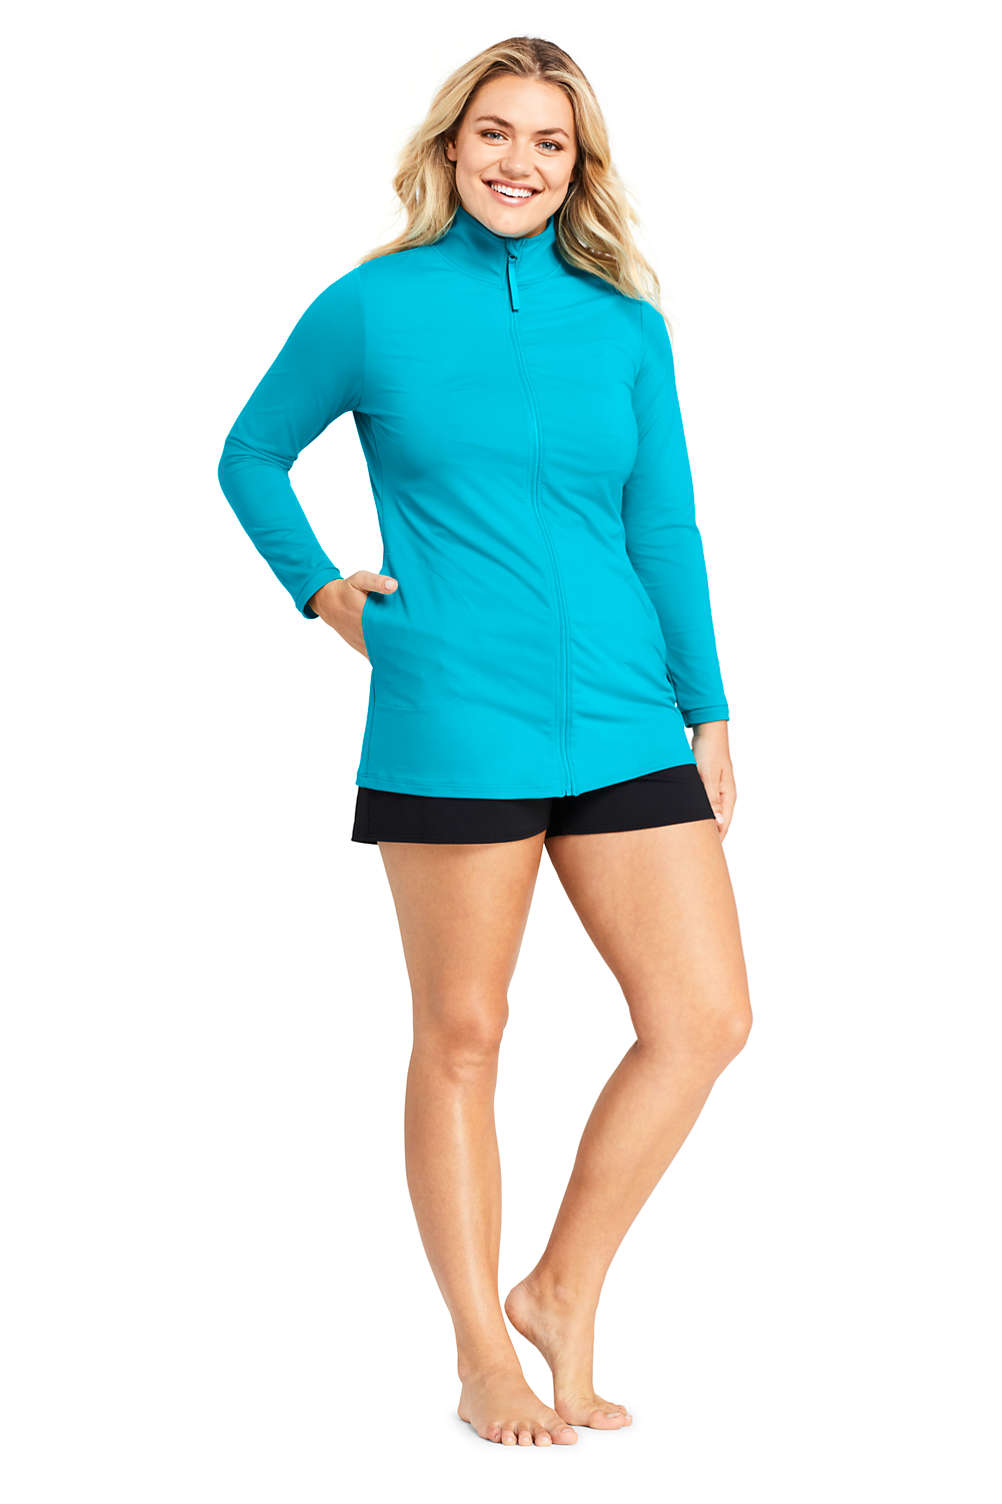 c6eff8386 Women s Plus Size Full Zip Swim Cover-up Tunic Rash Guard from Lands  End